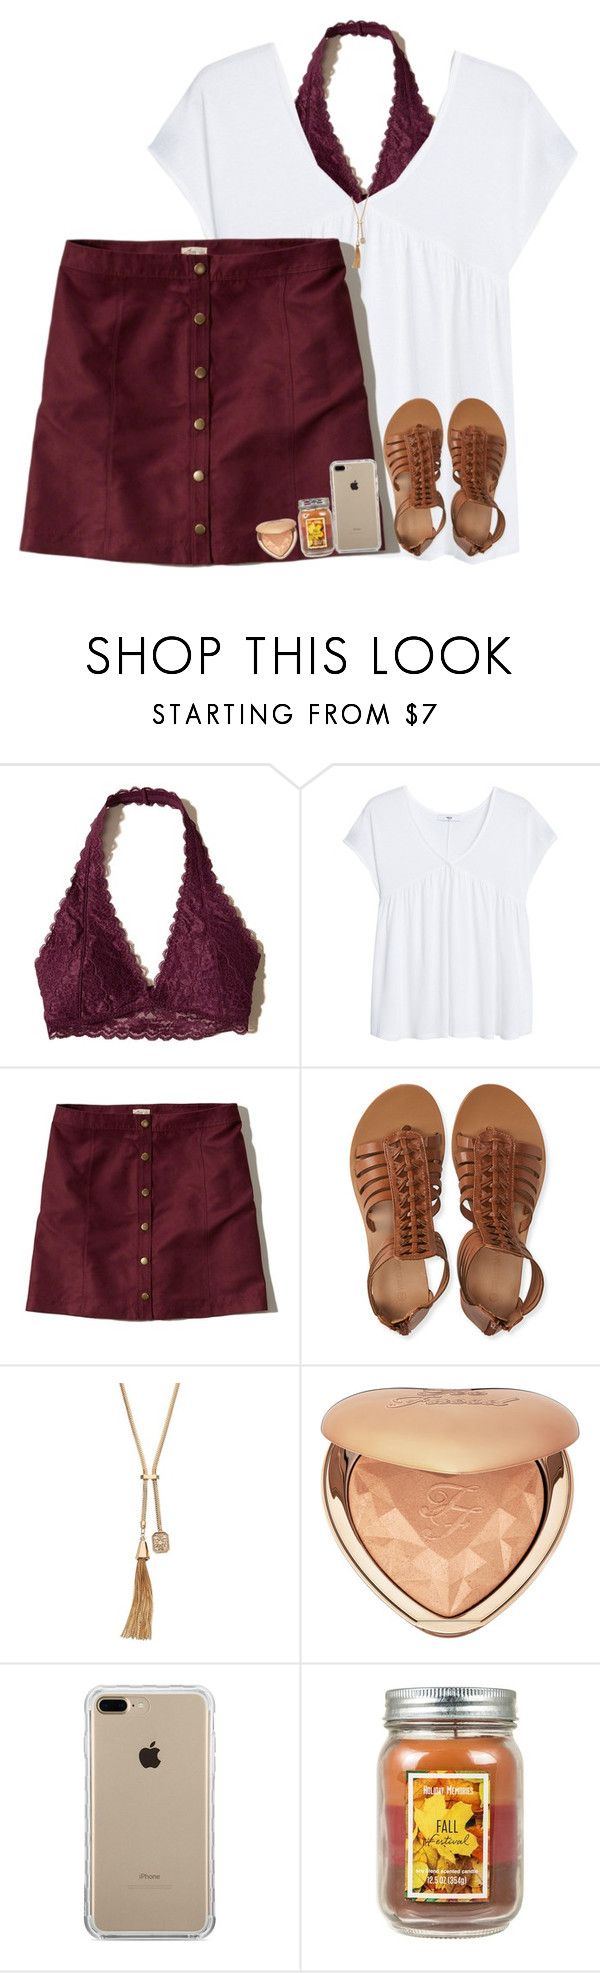 """1st day of fall ((:"" by arieannahicks on Polyvore featuring Hollister Co., MANGO, Aéropostale, Jennifer Lopez, Too Faced Cosmetics and Belkin"